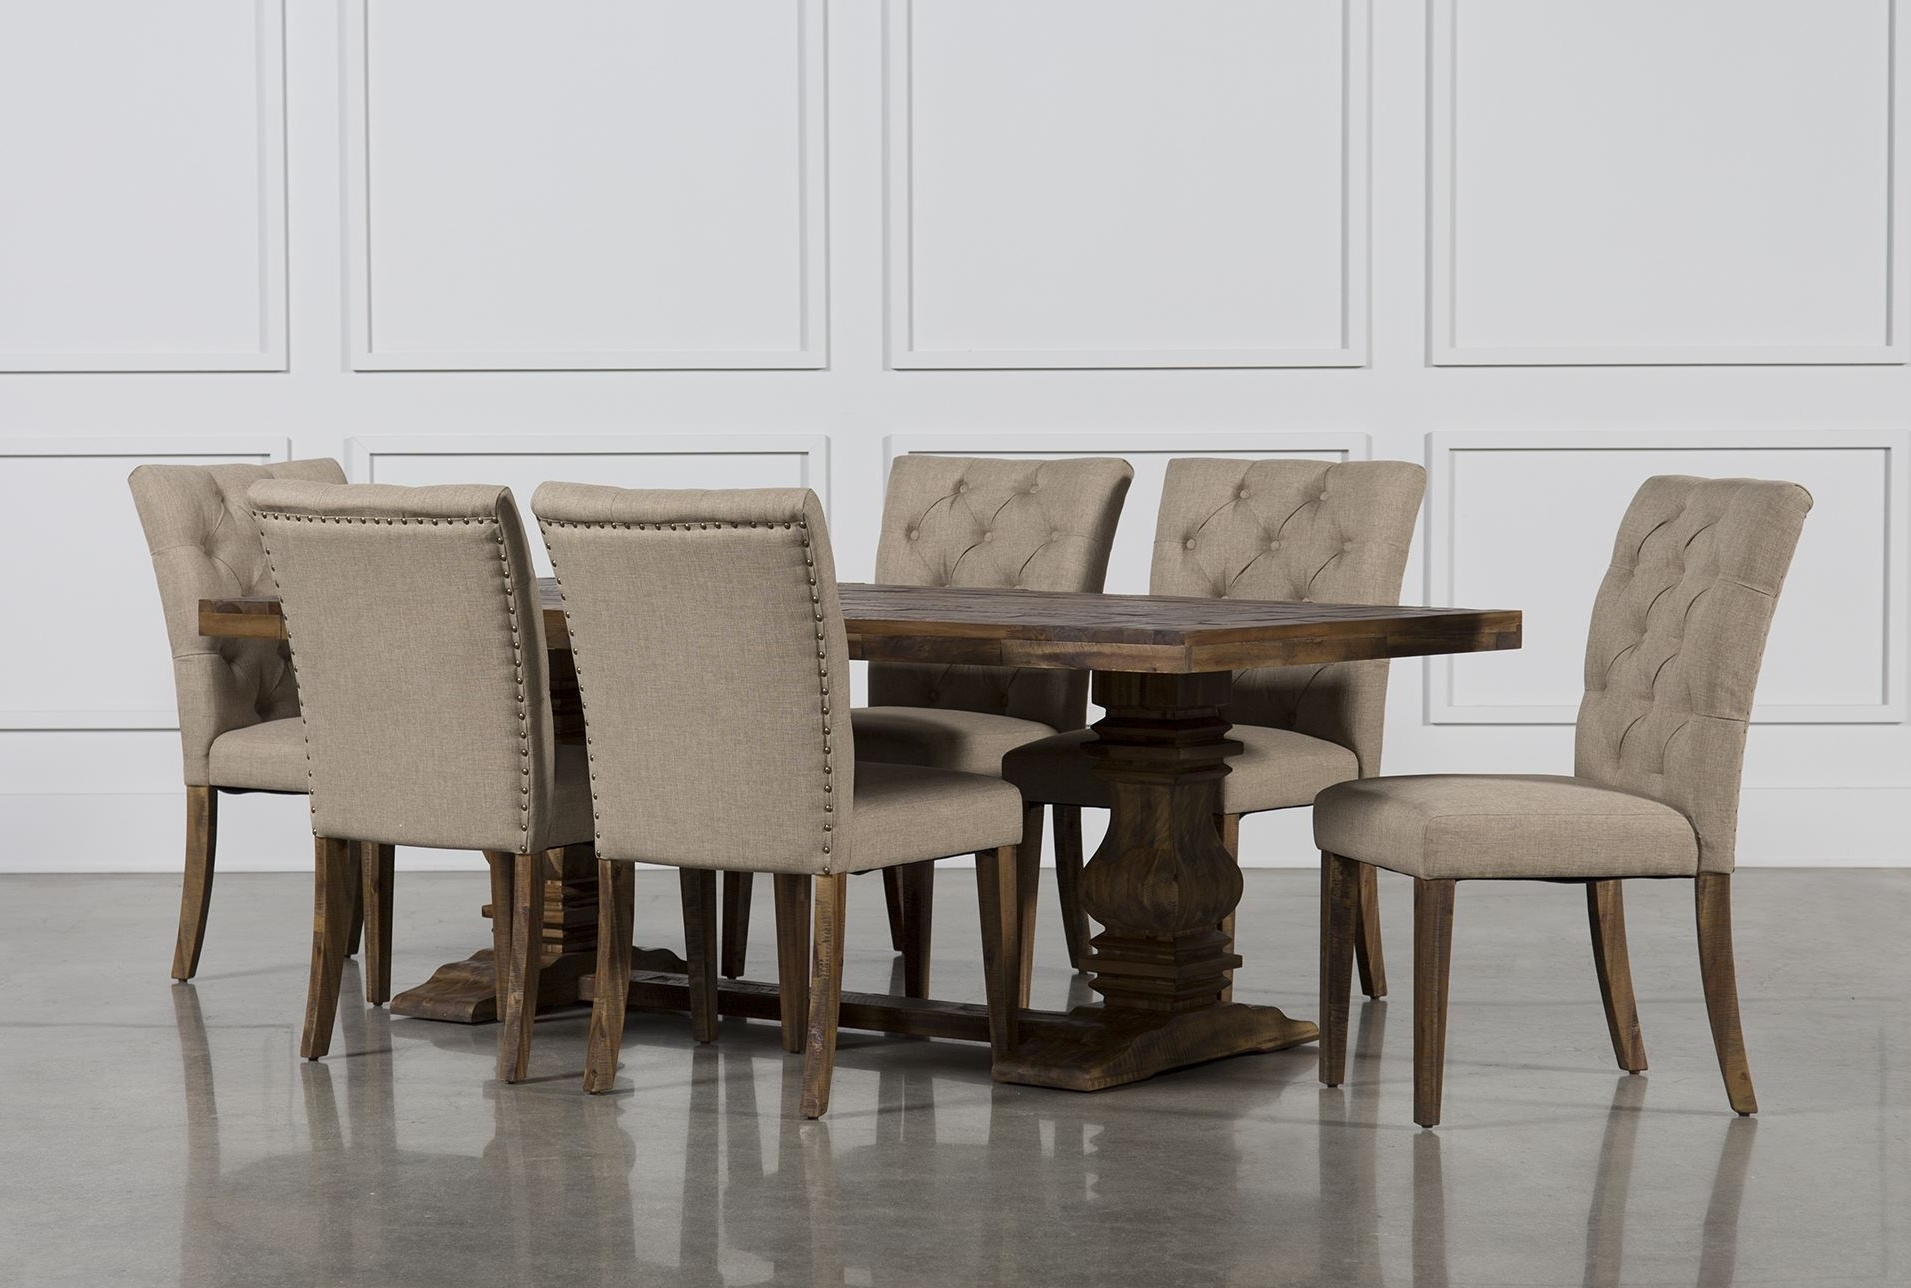 Partridge Throughout Most Recent Caira 7 Piece Rectangular Dining Sets With Upholstered Side Chairs (View 16 of 25)